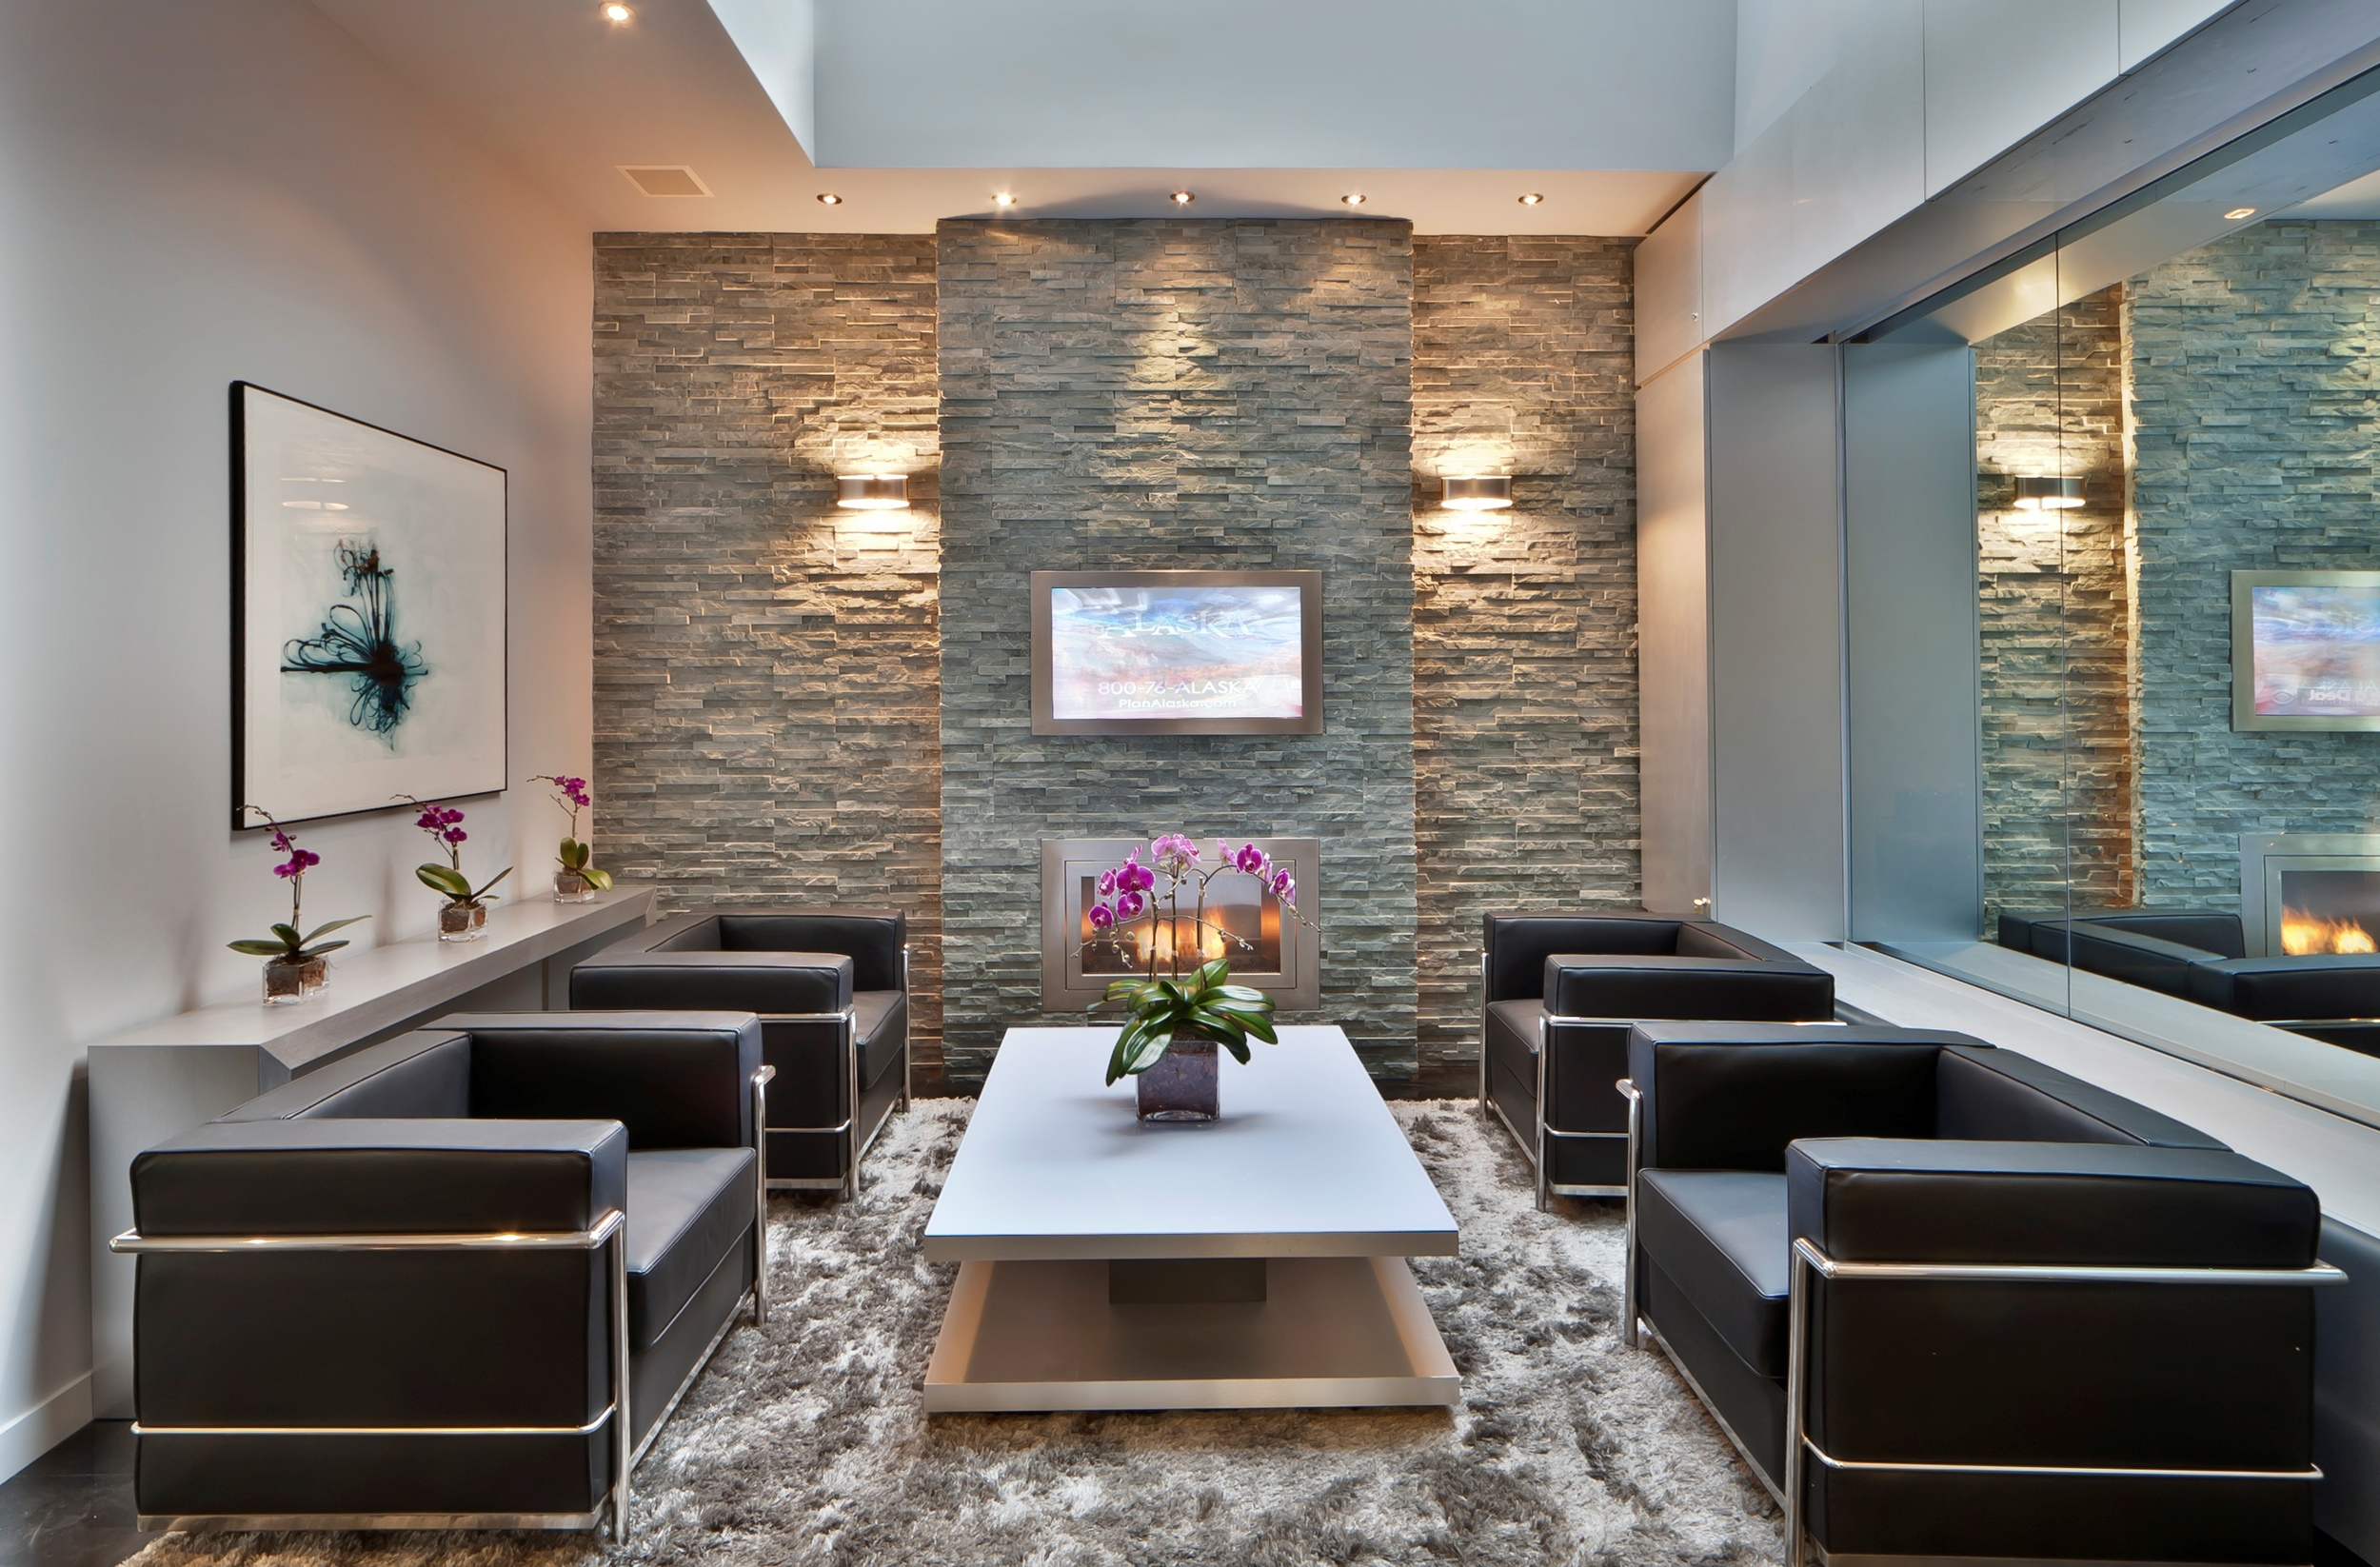 Commercial fireplace design